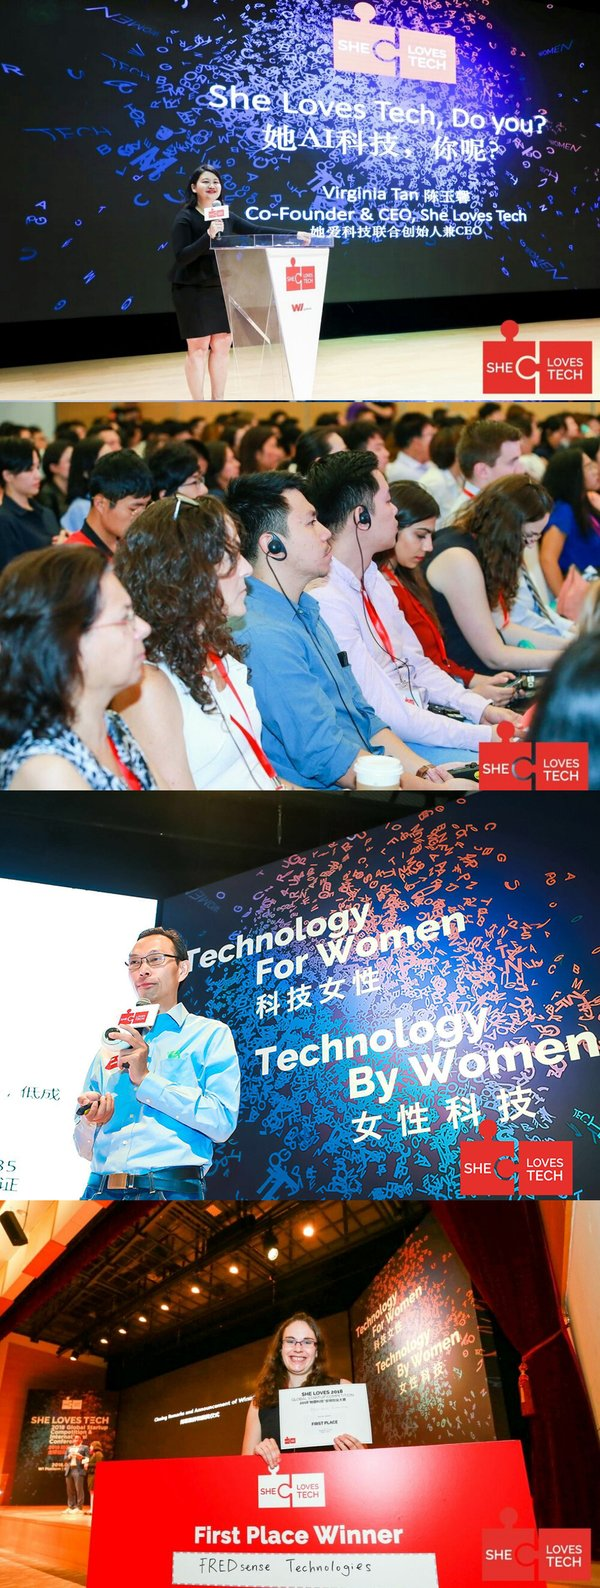 She Loves Tech 2018 Global Startup Competition & International Conference